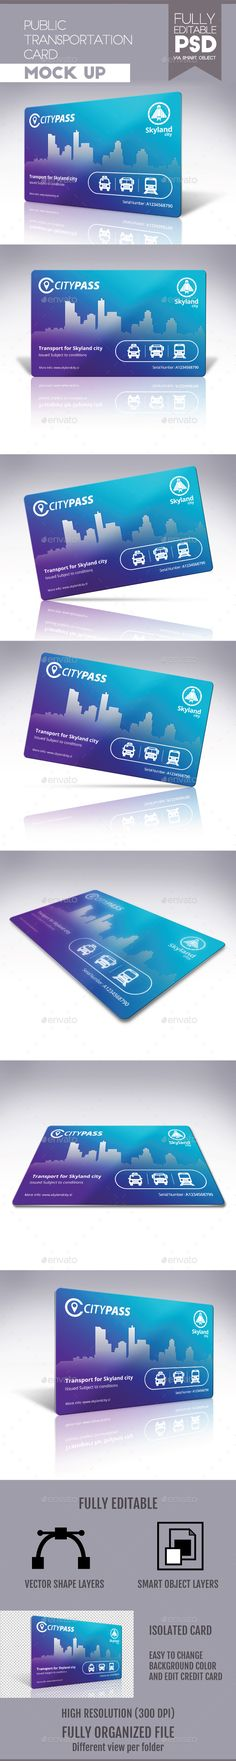 Public Transportation Card.  bus, car, card, metro, pass, passenger, pay, plastic card, public transportation, subway, taxi, train, transport, trolley, trolleybus